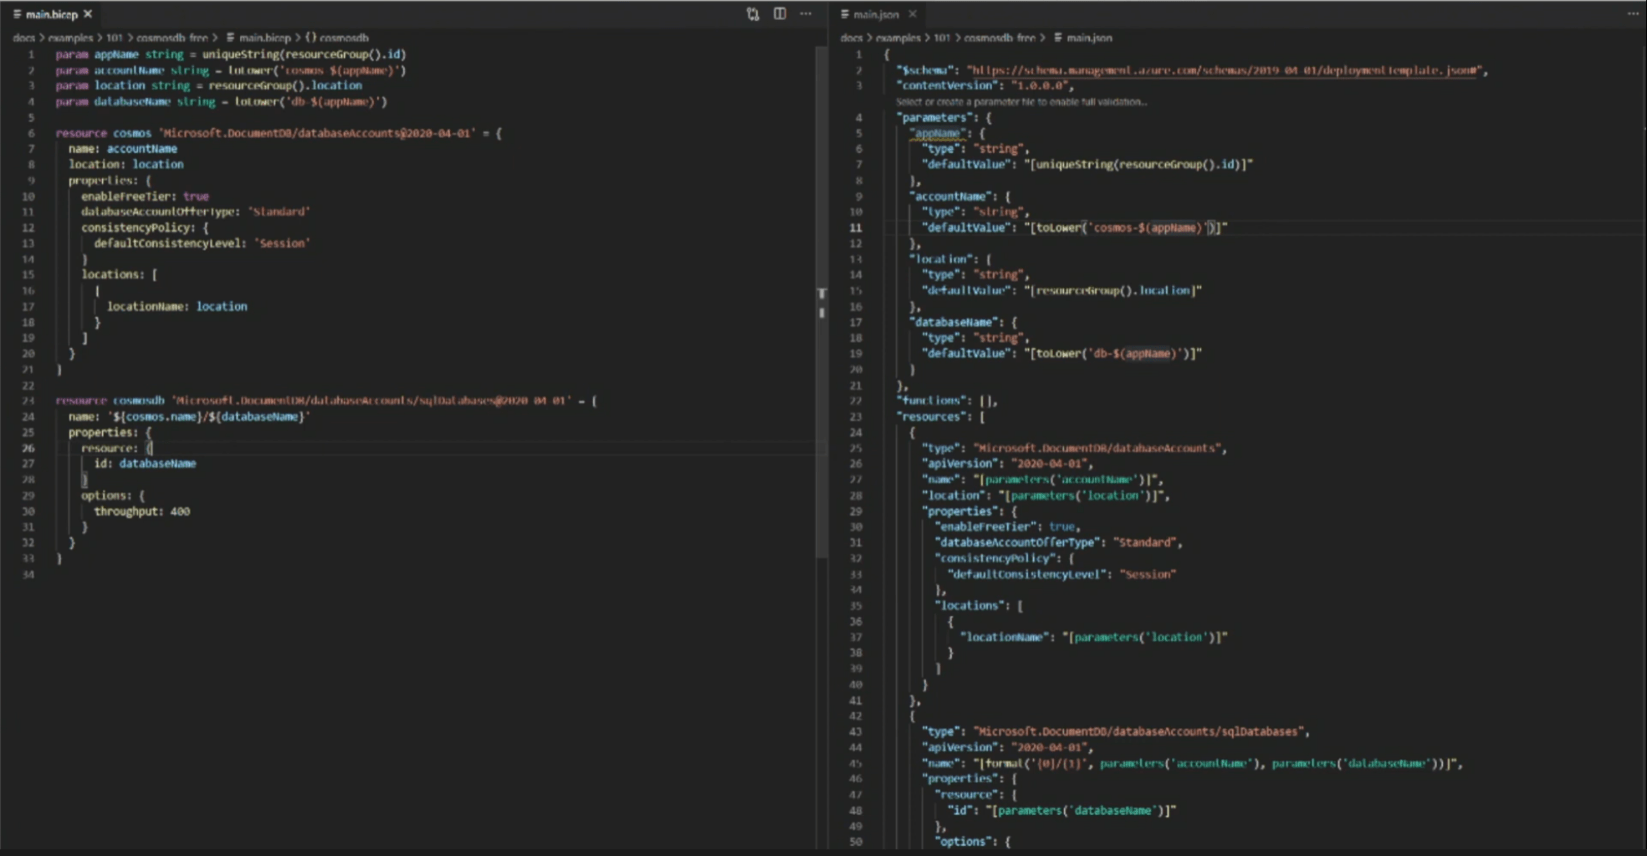 Comparison of Bicep code and ARM template JSON code